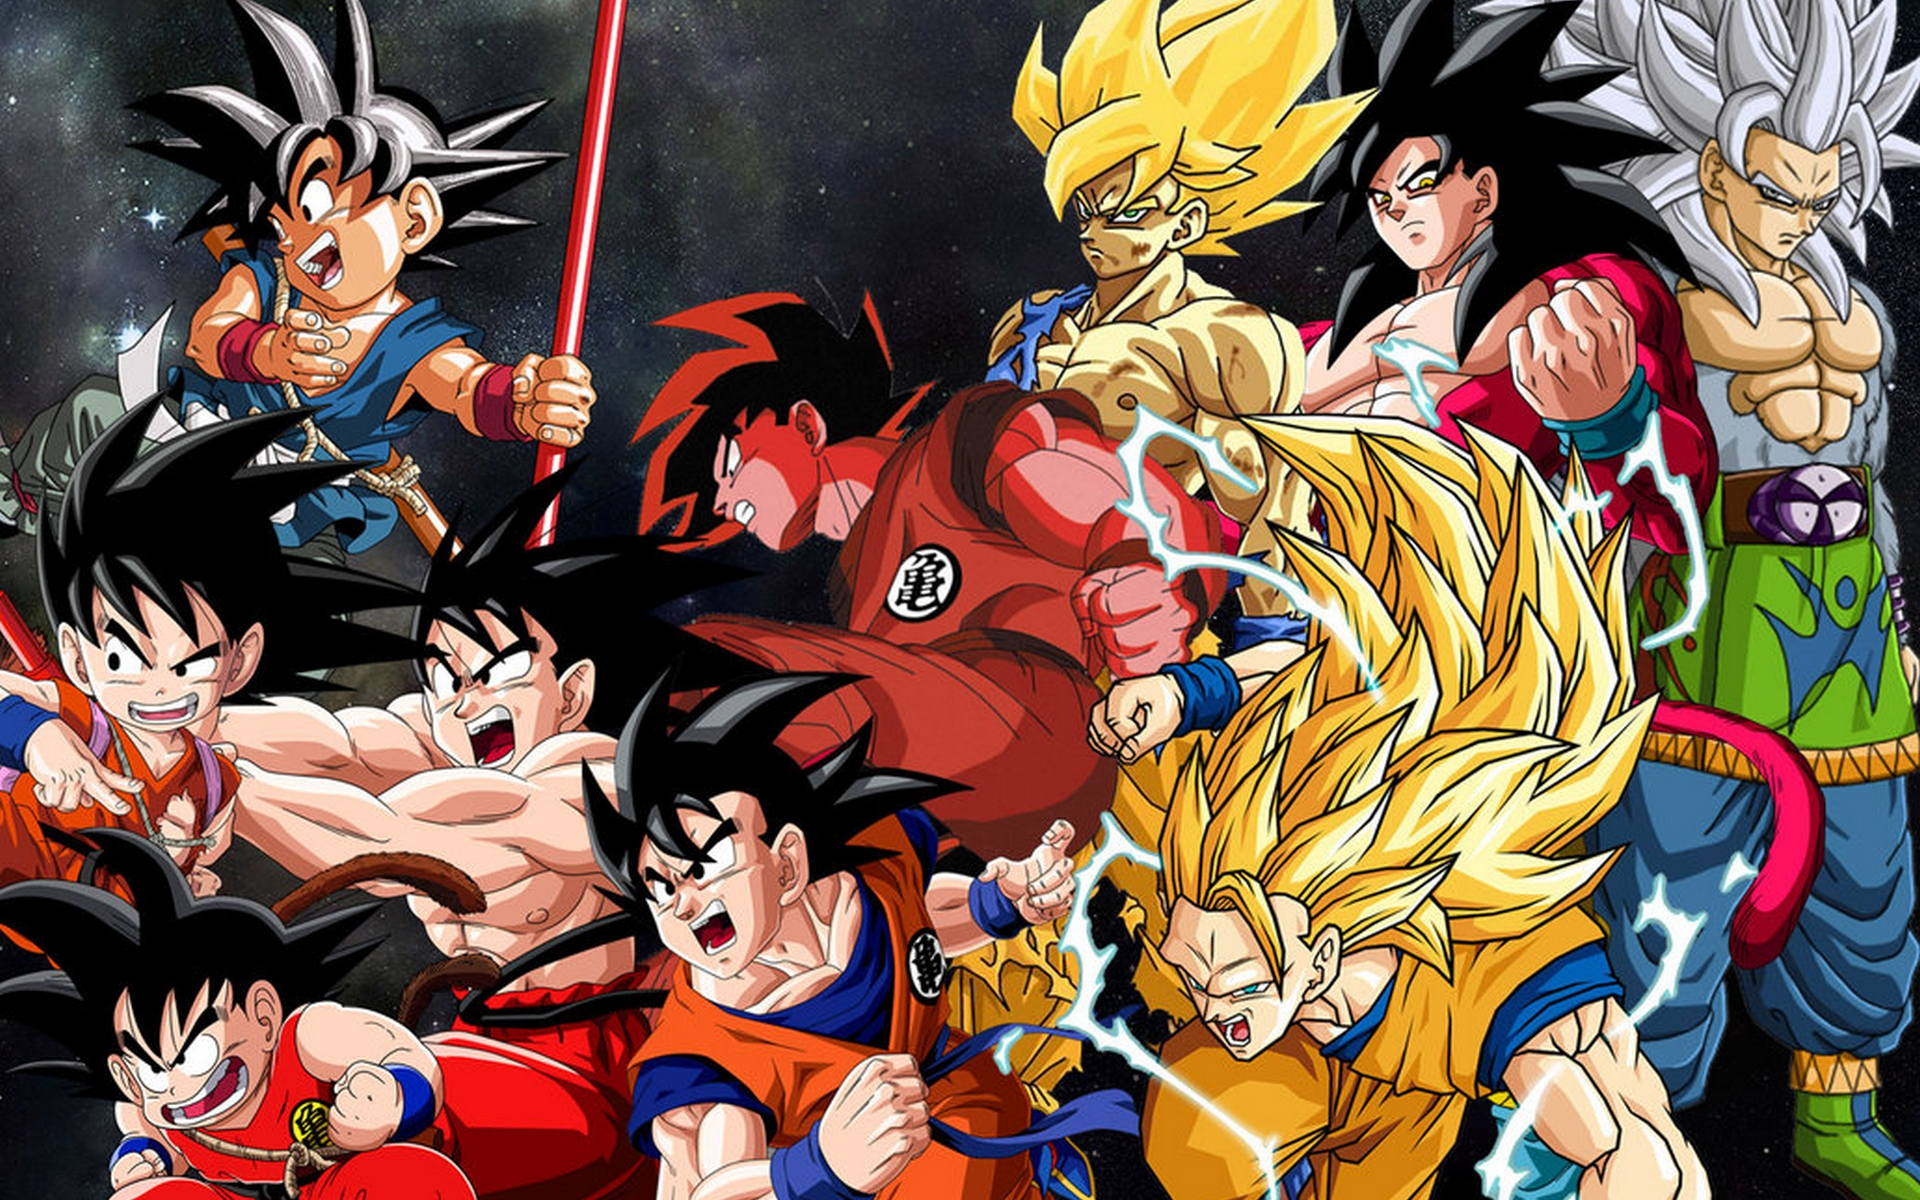 Dragon ball z goku wallpaper wallpapersafari - Dragon ball gt goku wallpaper ...